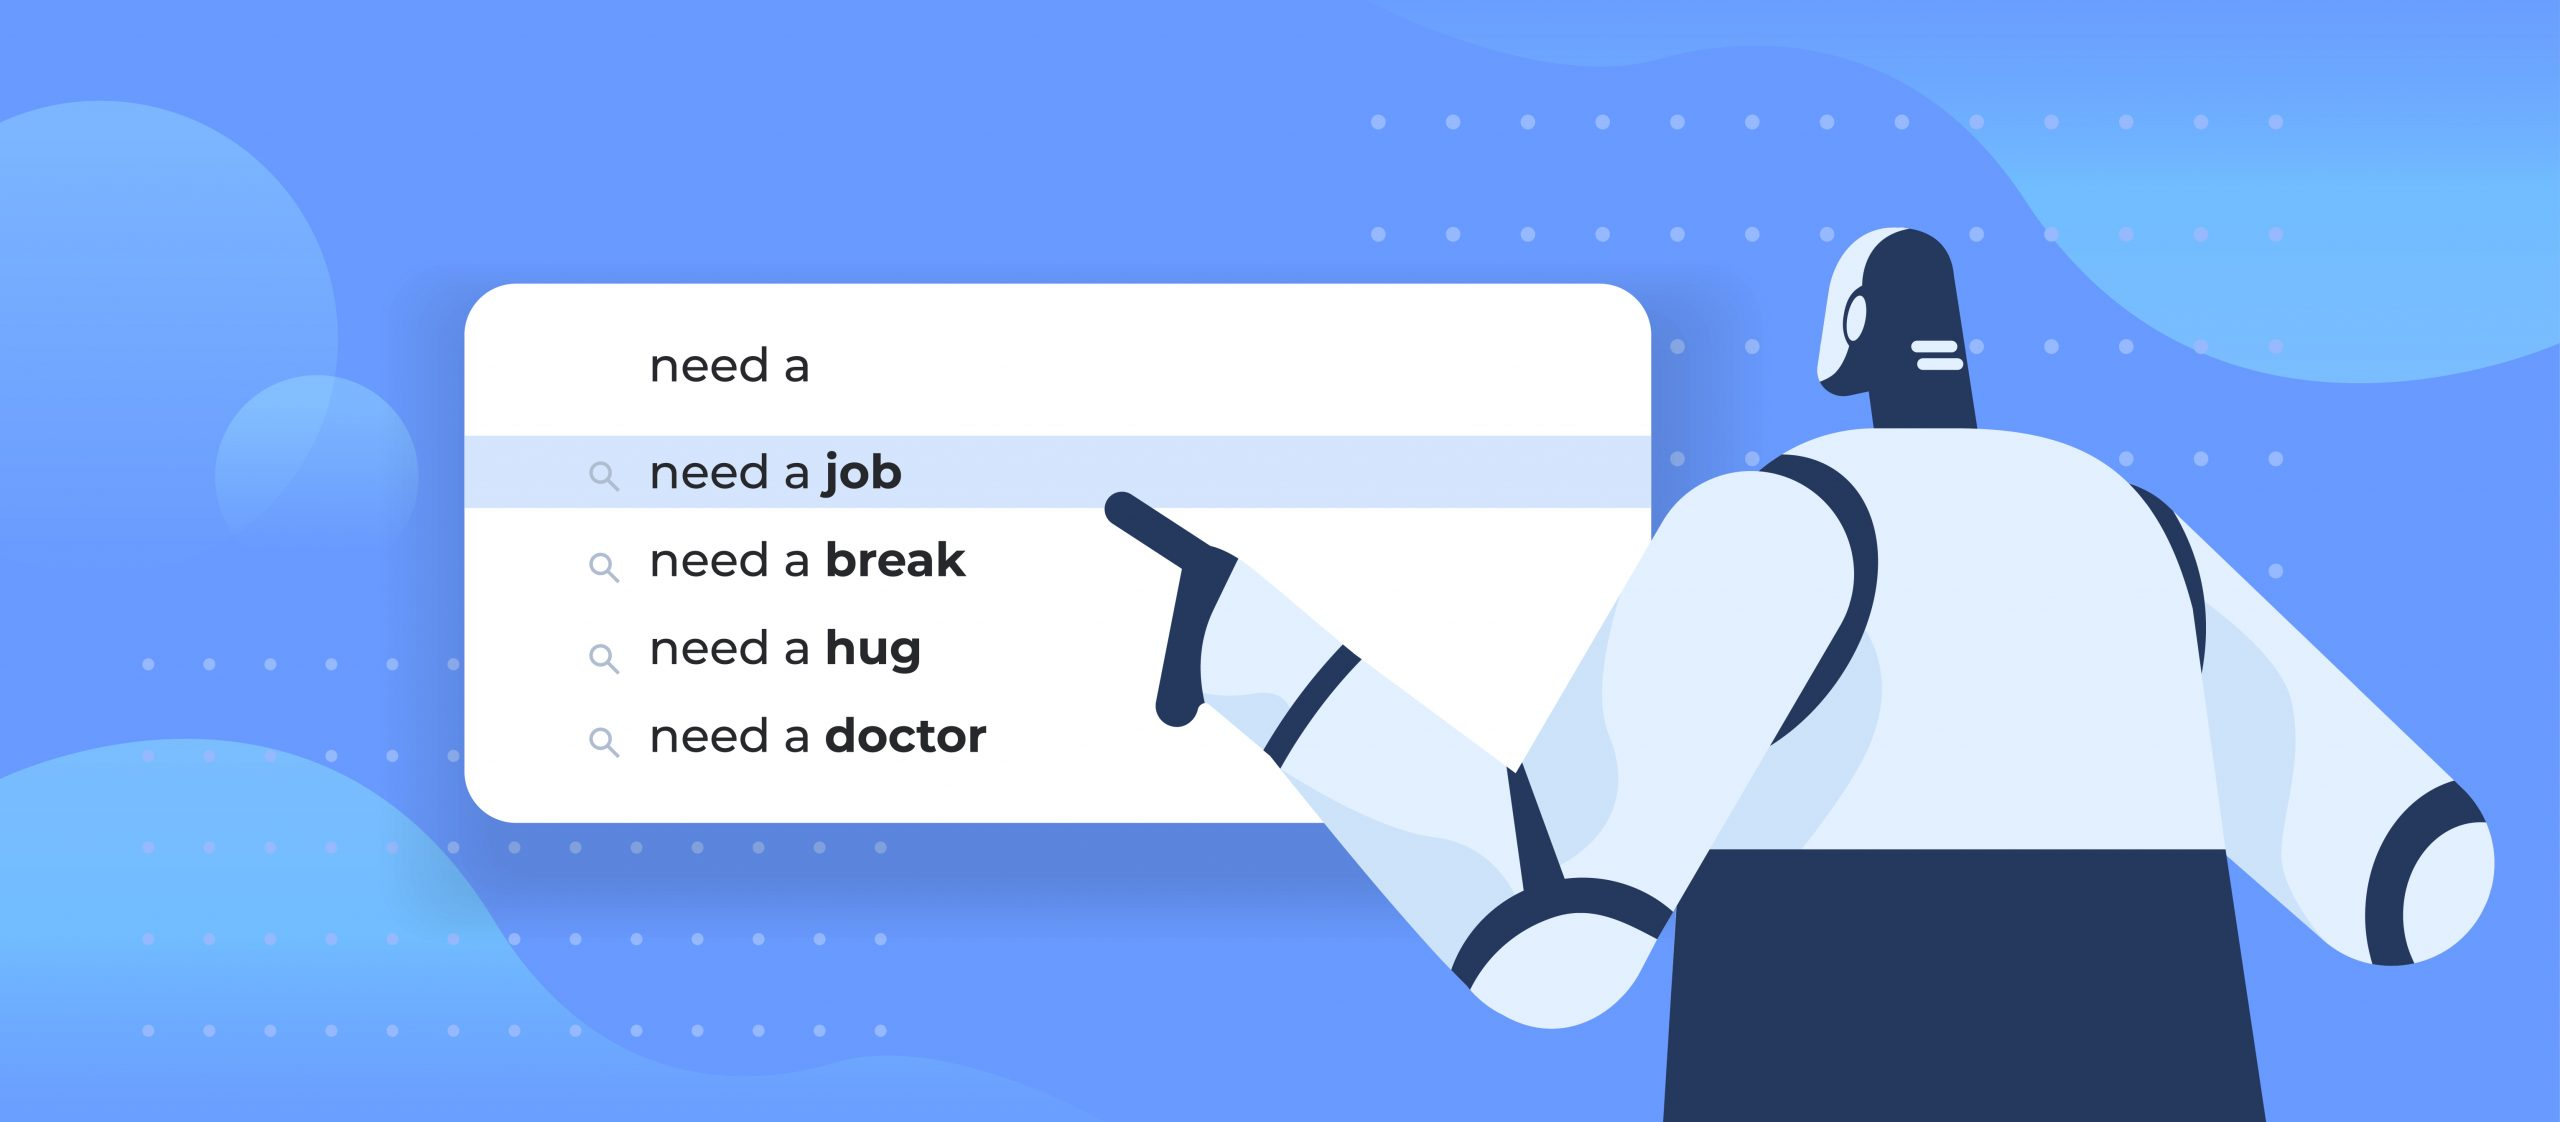 Use Cases For Chatbots In Recruiting.